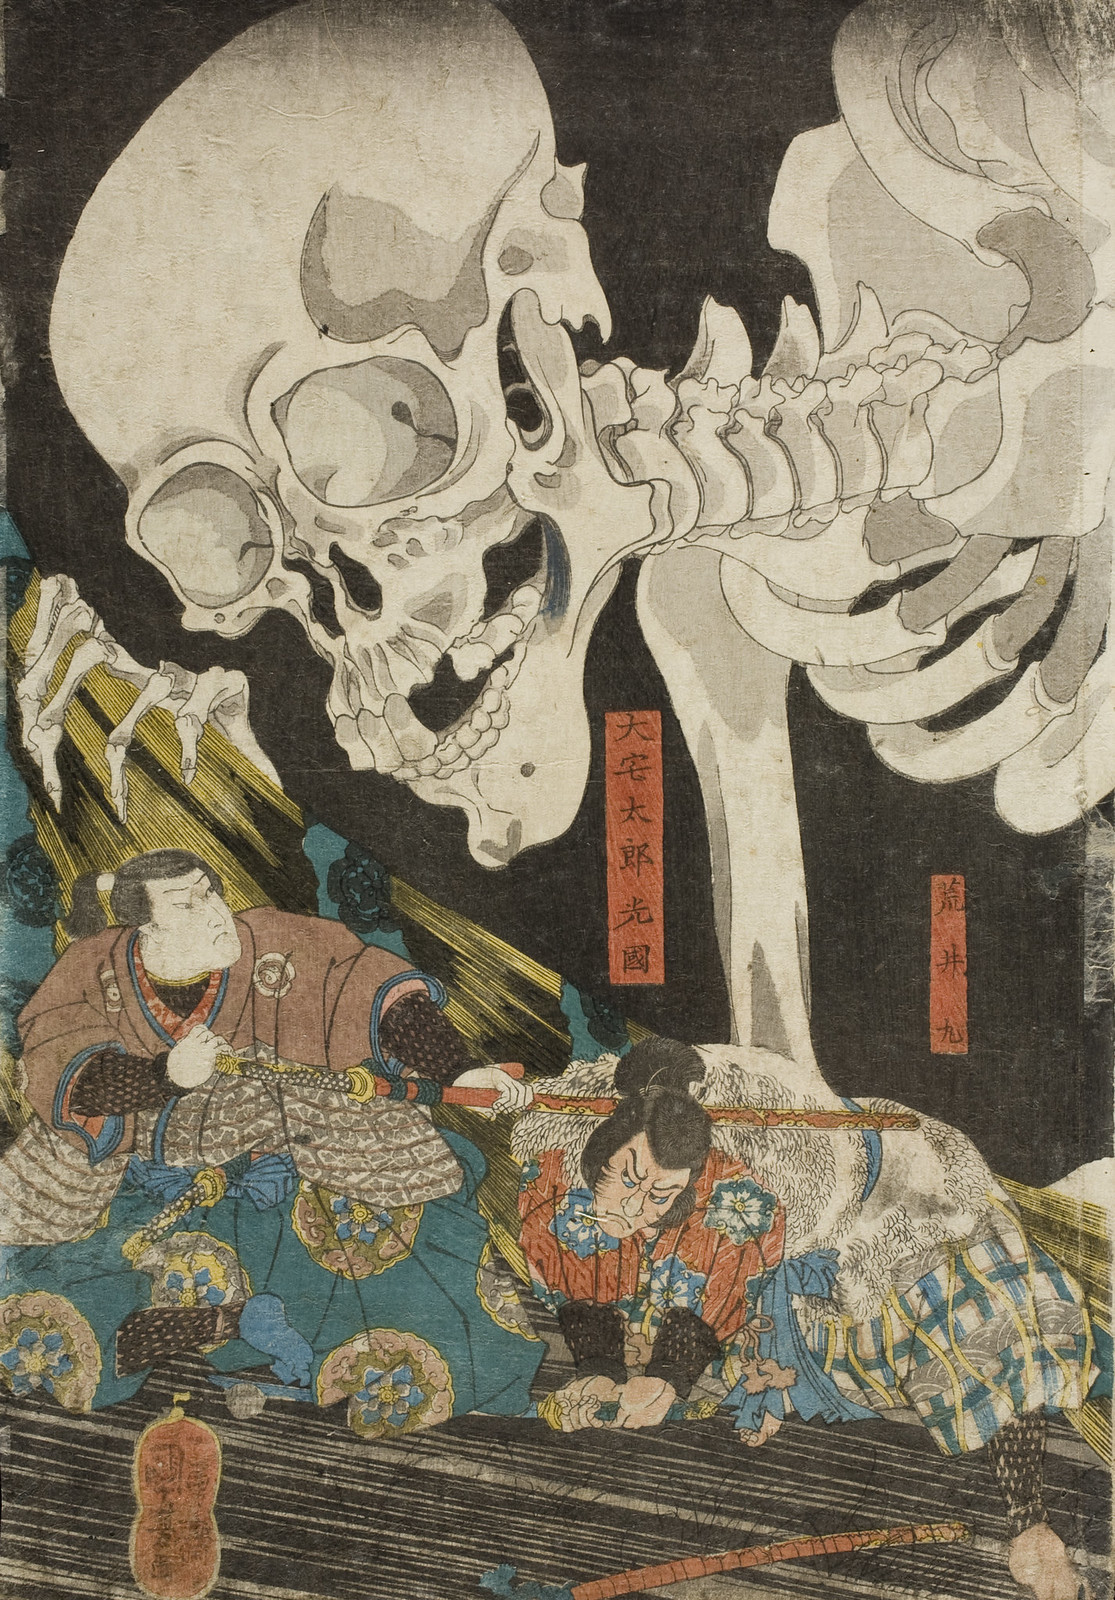 Utagawa Kuniyoshi - In the Ruined Palace at Sōma, Masakado's Daughter Takiyasha Uses Sorcery to Gather Allies, 1844 (middle panel)